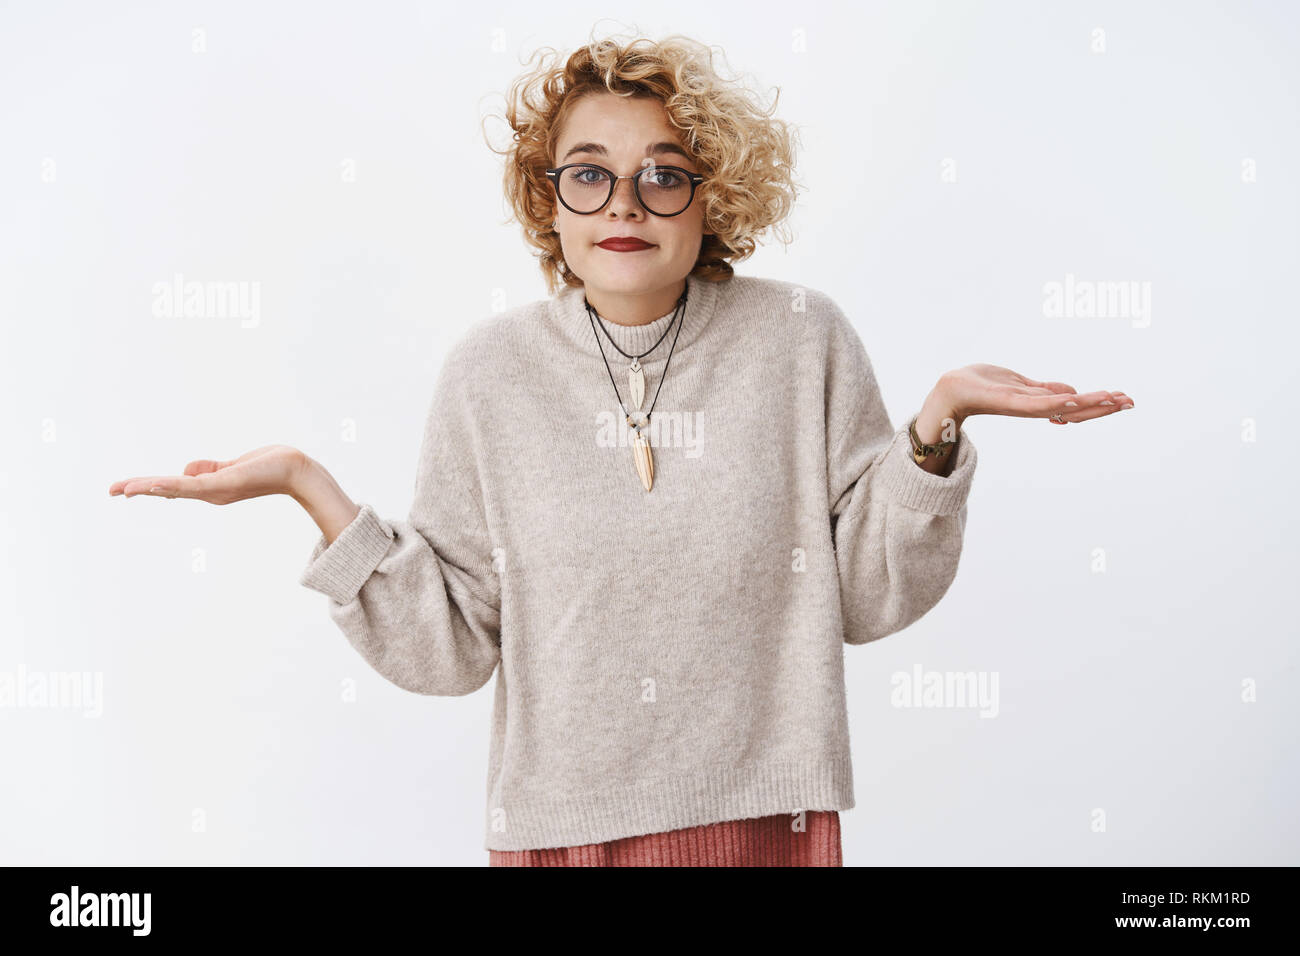 Well there nothing we can do about it. Portrait of unbothered and clueless cute european blond female coworker shrugging with hands spread sideways - Stock Image